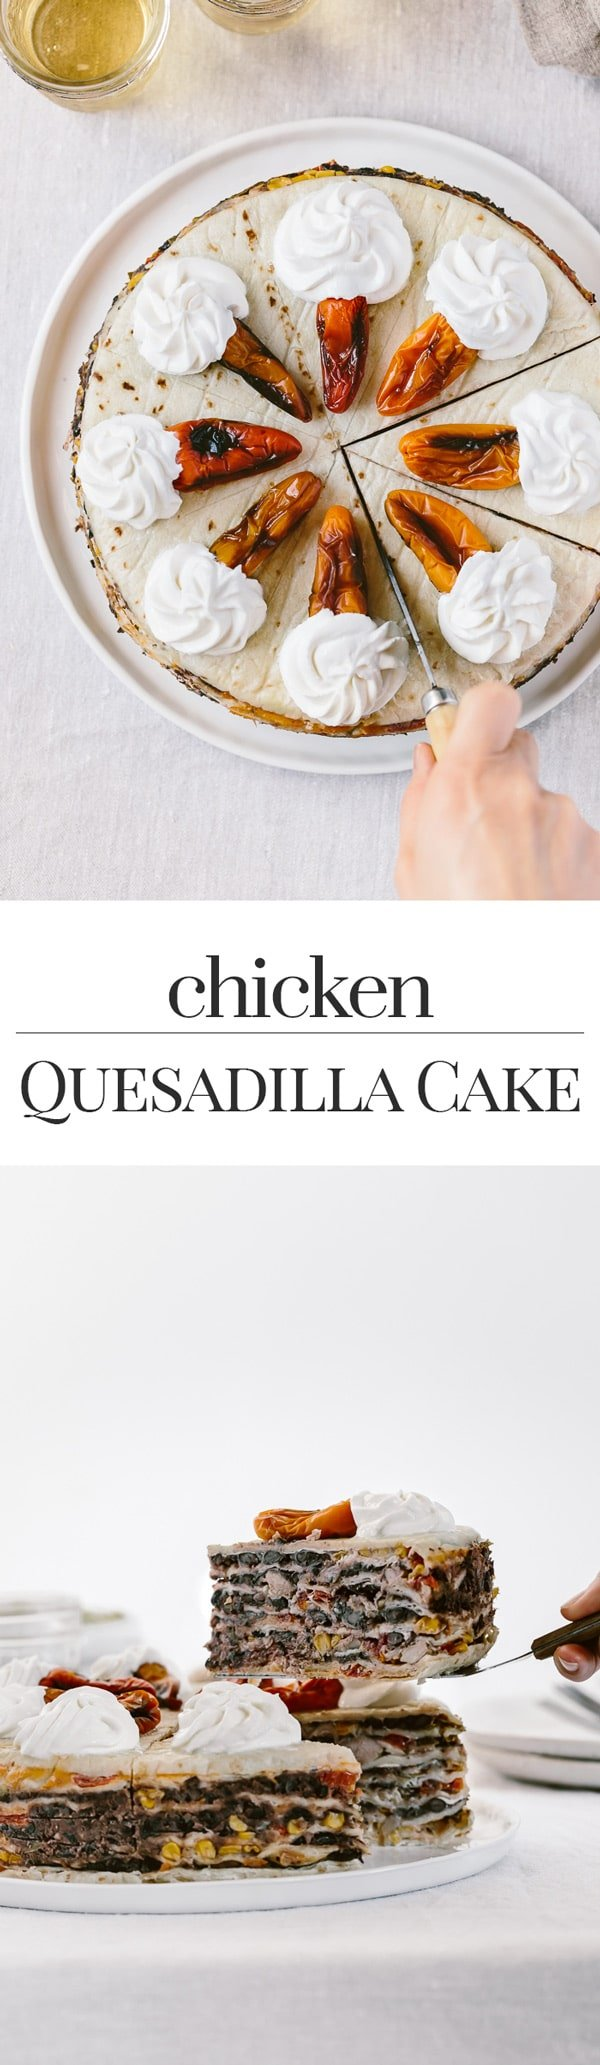 This Chicken Quesadilla Cake is made by layering tortillas with refried beans, corn, jalapeños, chicken, tomatoes, and sweet peppers. The best part is that the possibilities are endless. Don't have chicken? Swap it with beef or shrimp. Are you vegetarian? Swap chicken with mushrooms or even tofu.